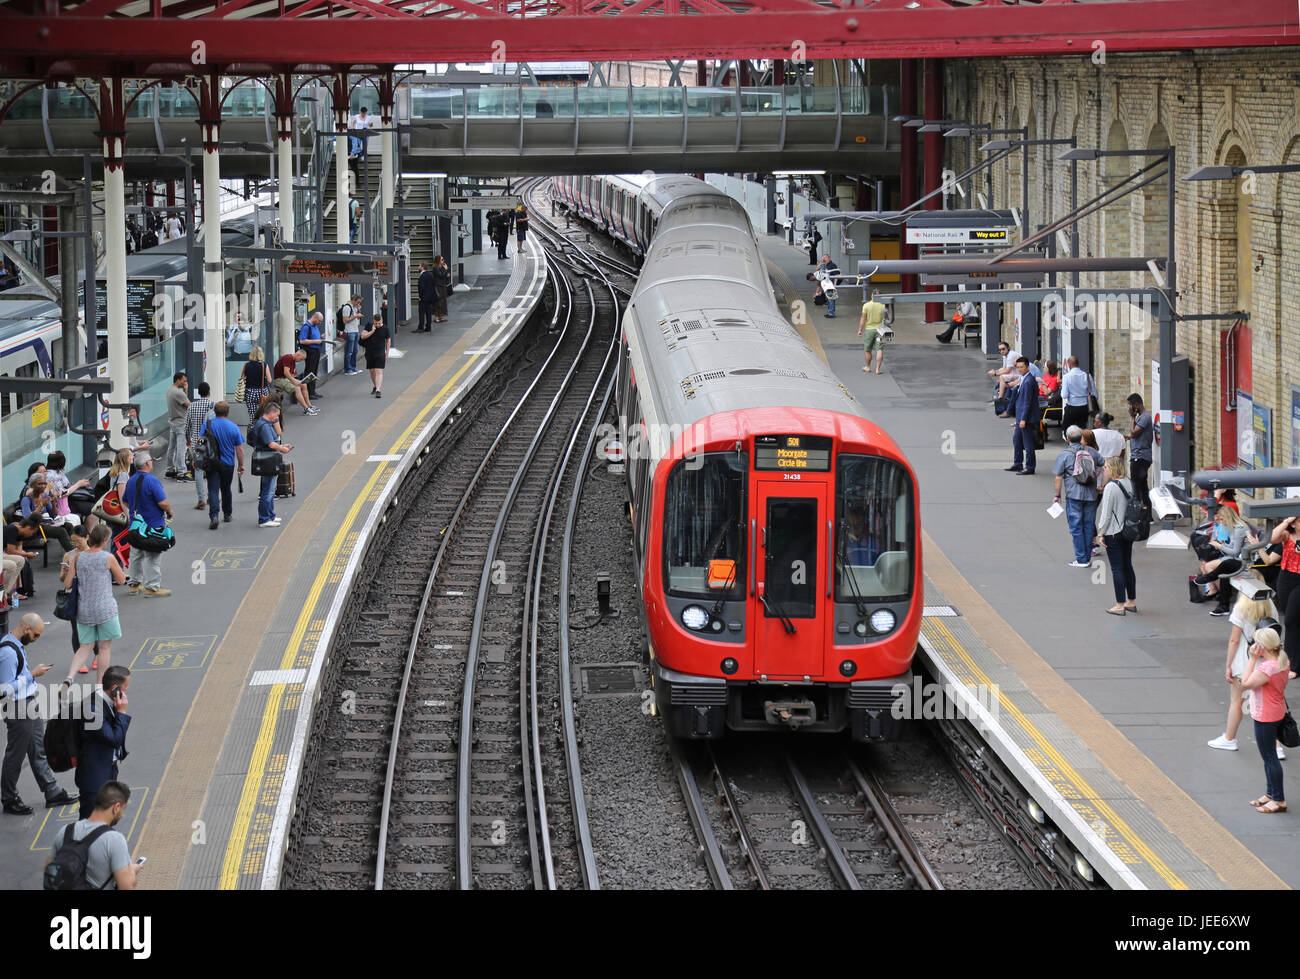 High level view of London Underground platforms 1 & 2 at Farringdon Station. Shows a new Circle Line train arriving - Stock Image